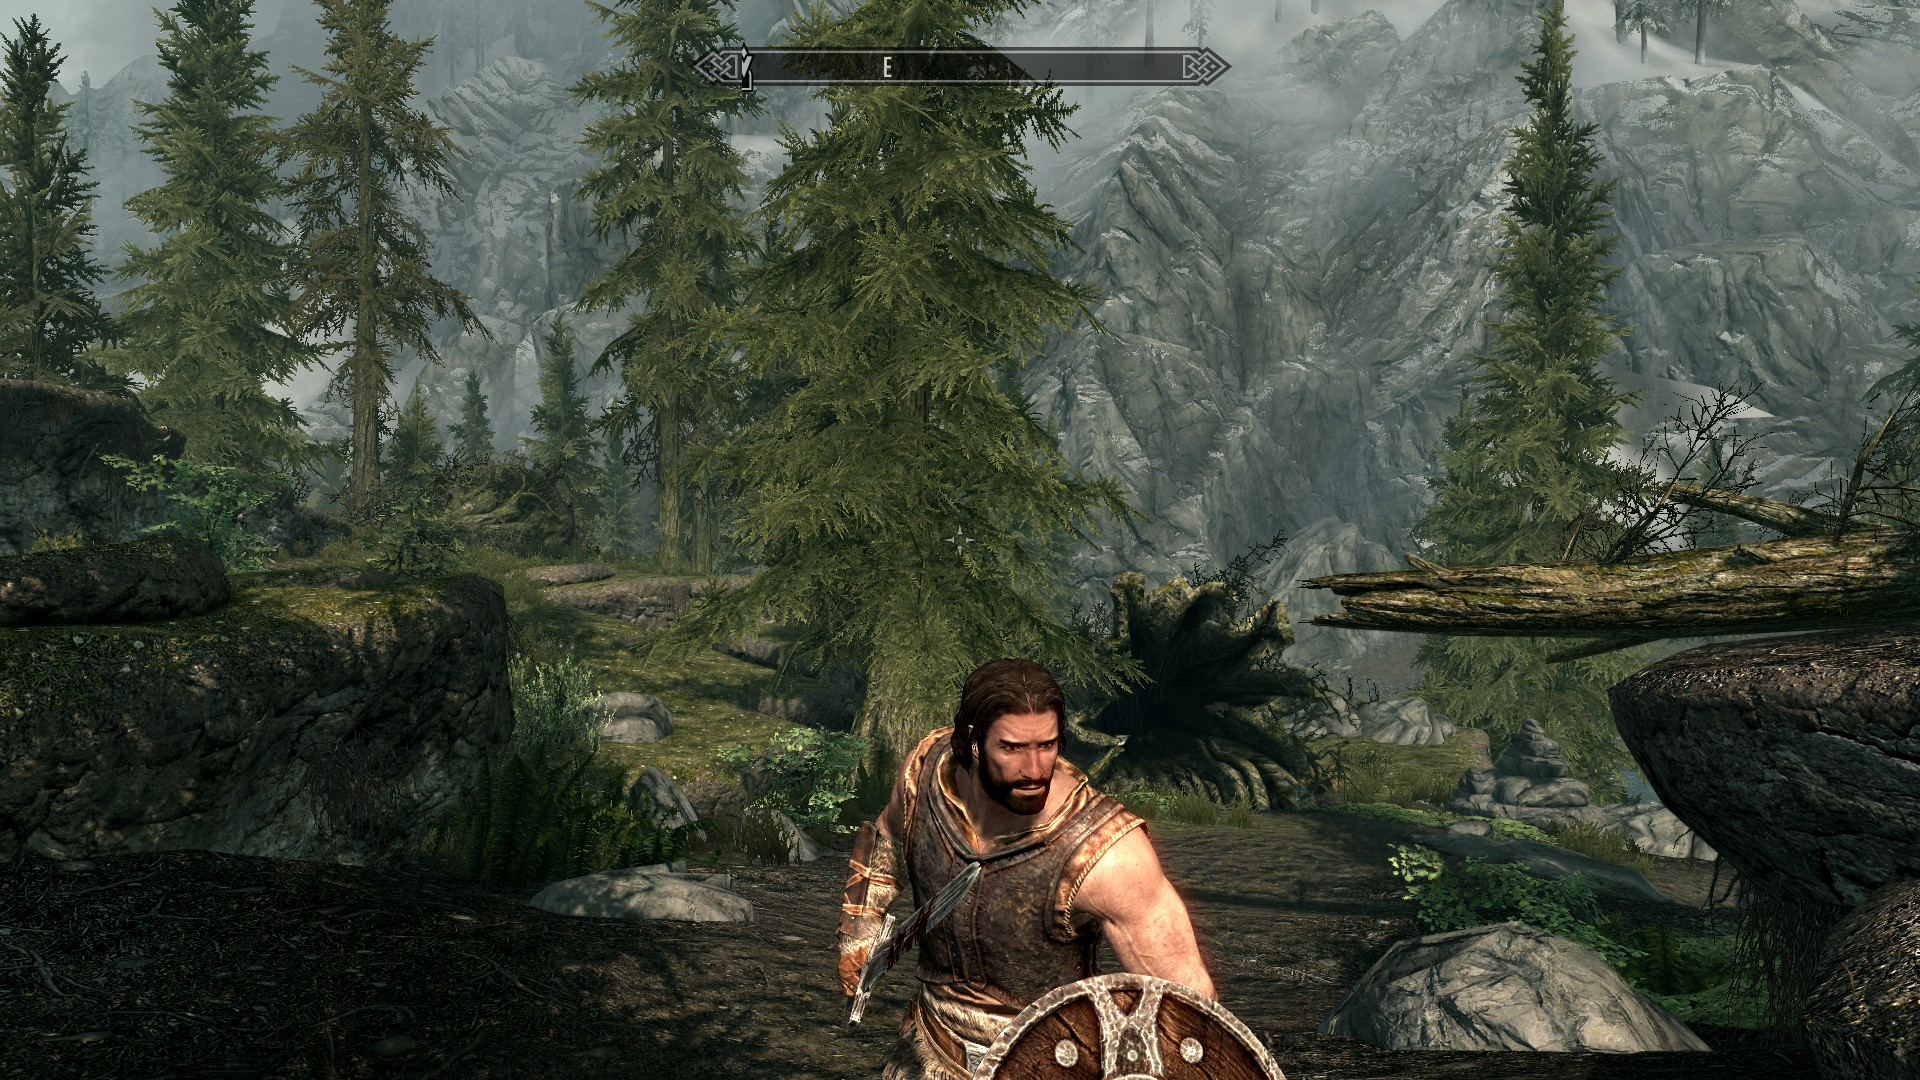 My favorite Skyrim mods